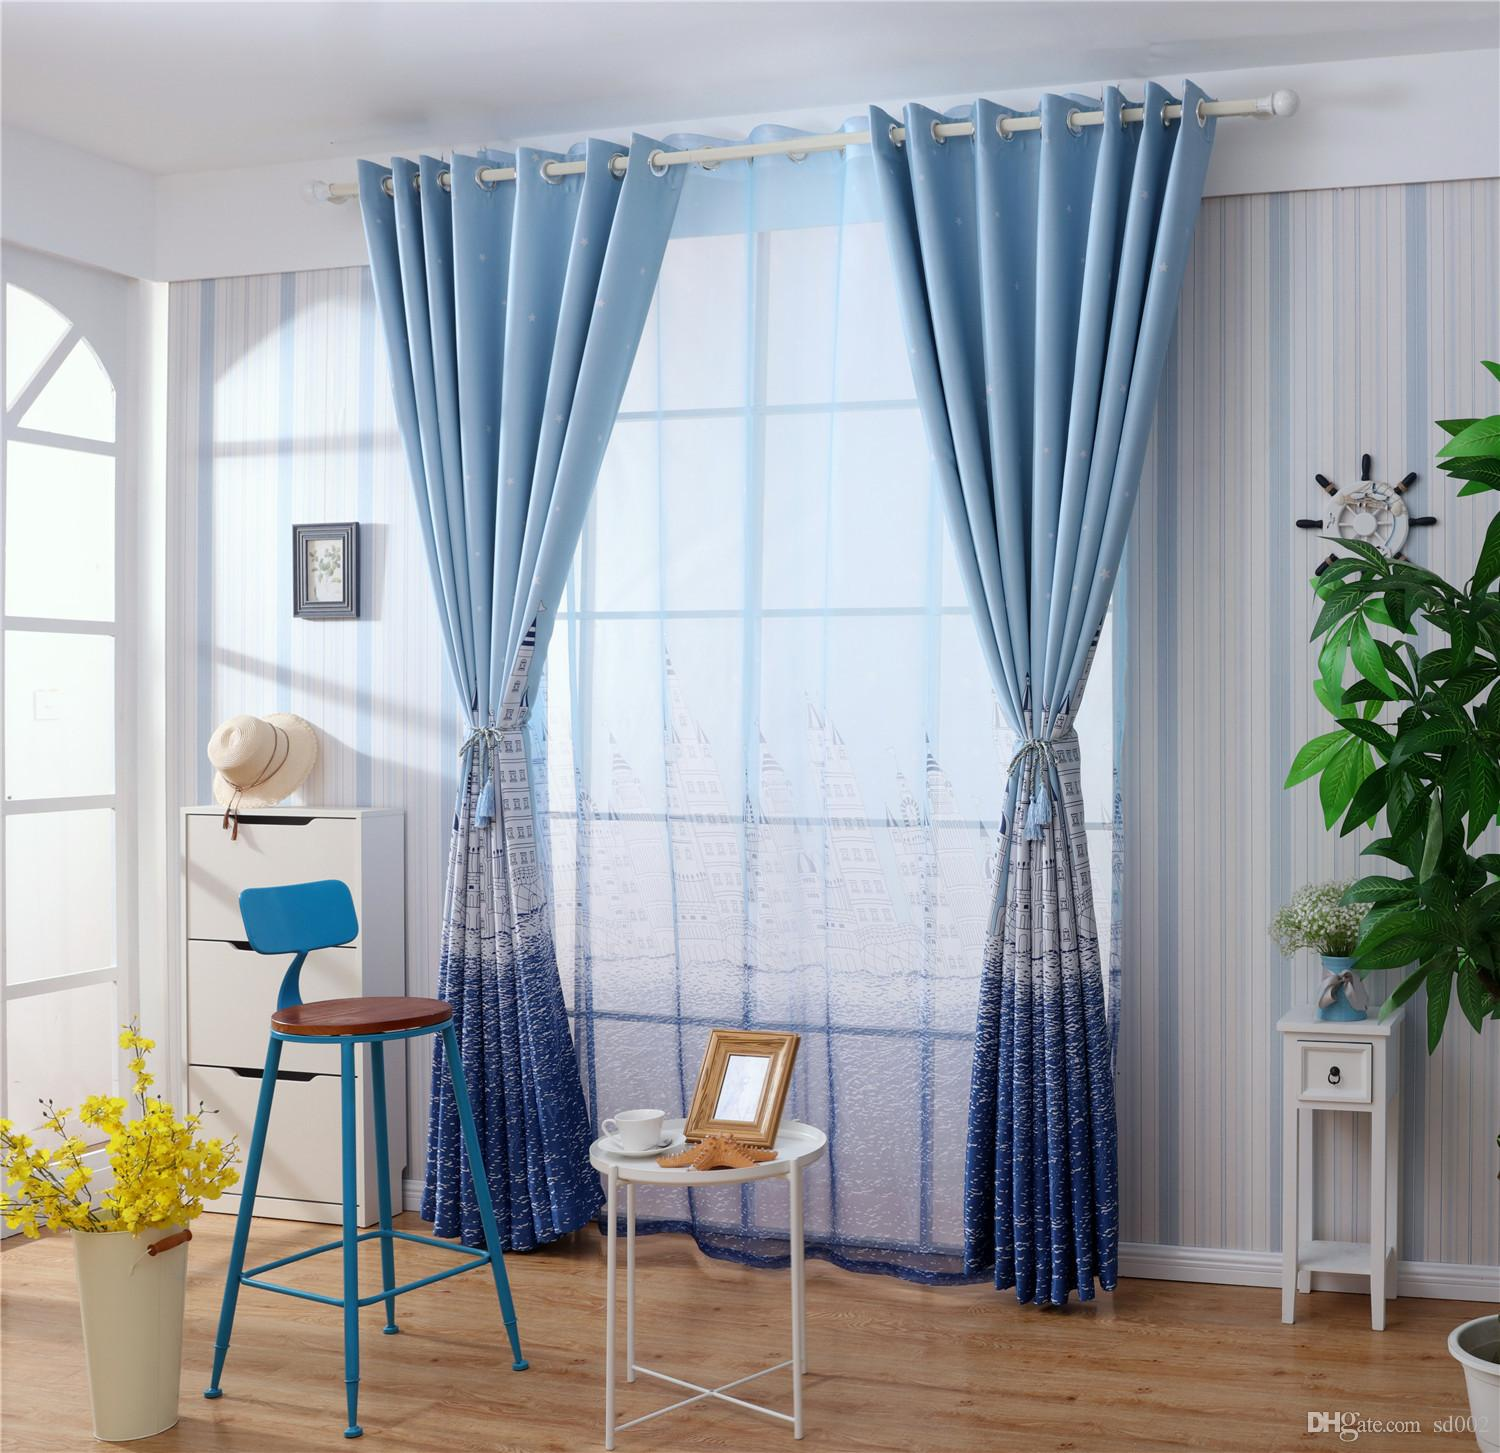 room darkening home winbourne grommet thermal in blinds lowes lined allen curtain single at polyester living window pl curtains shop for drapes treatments com decor roth cream